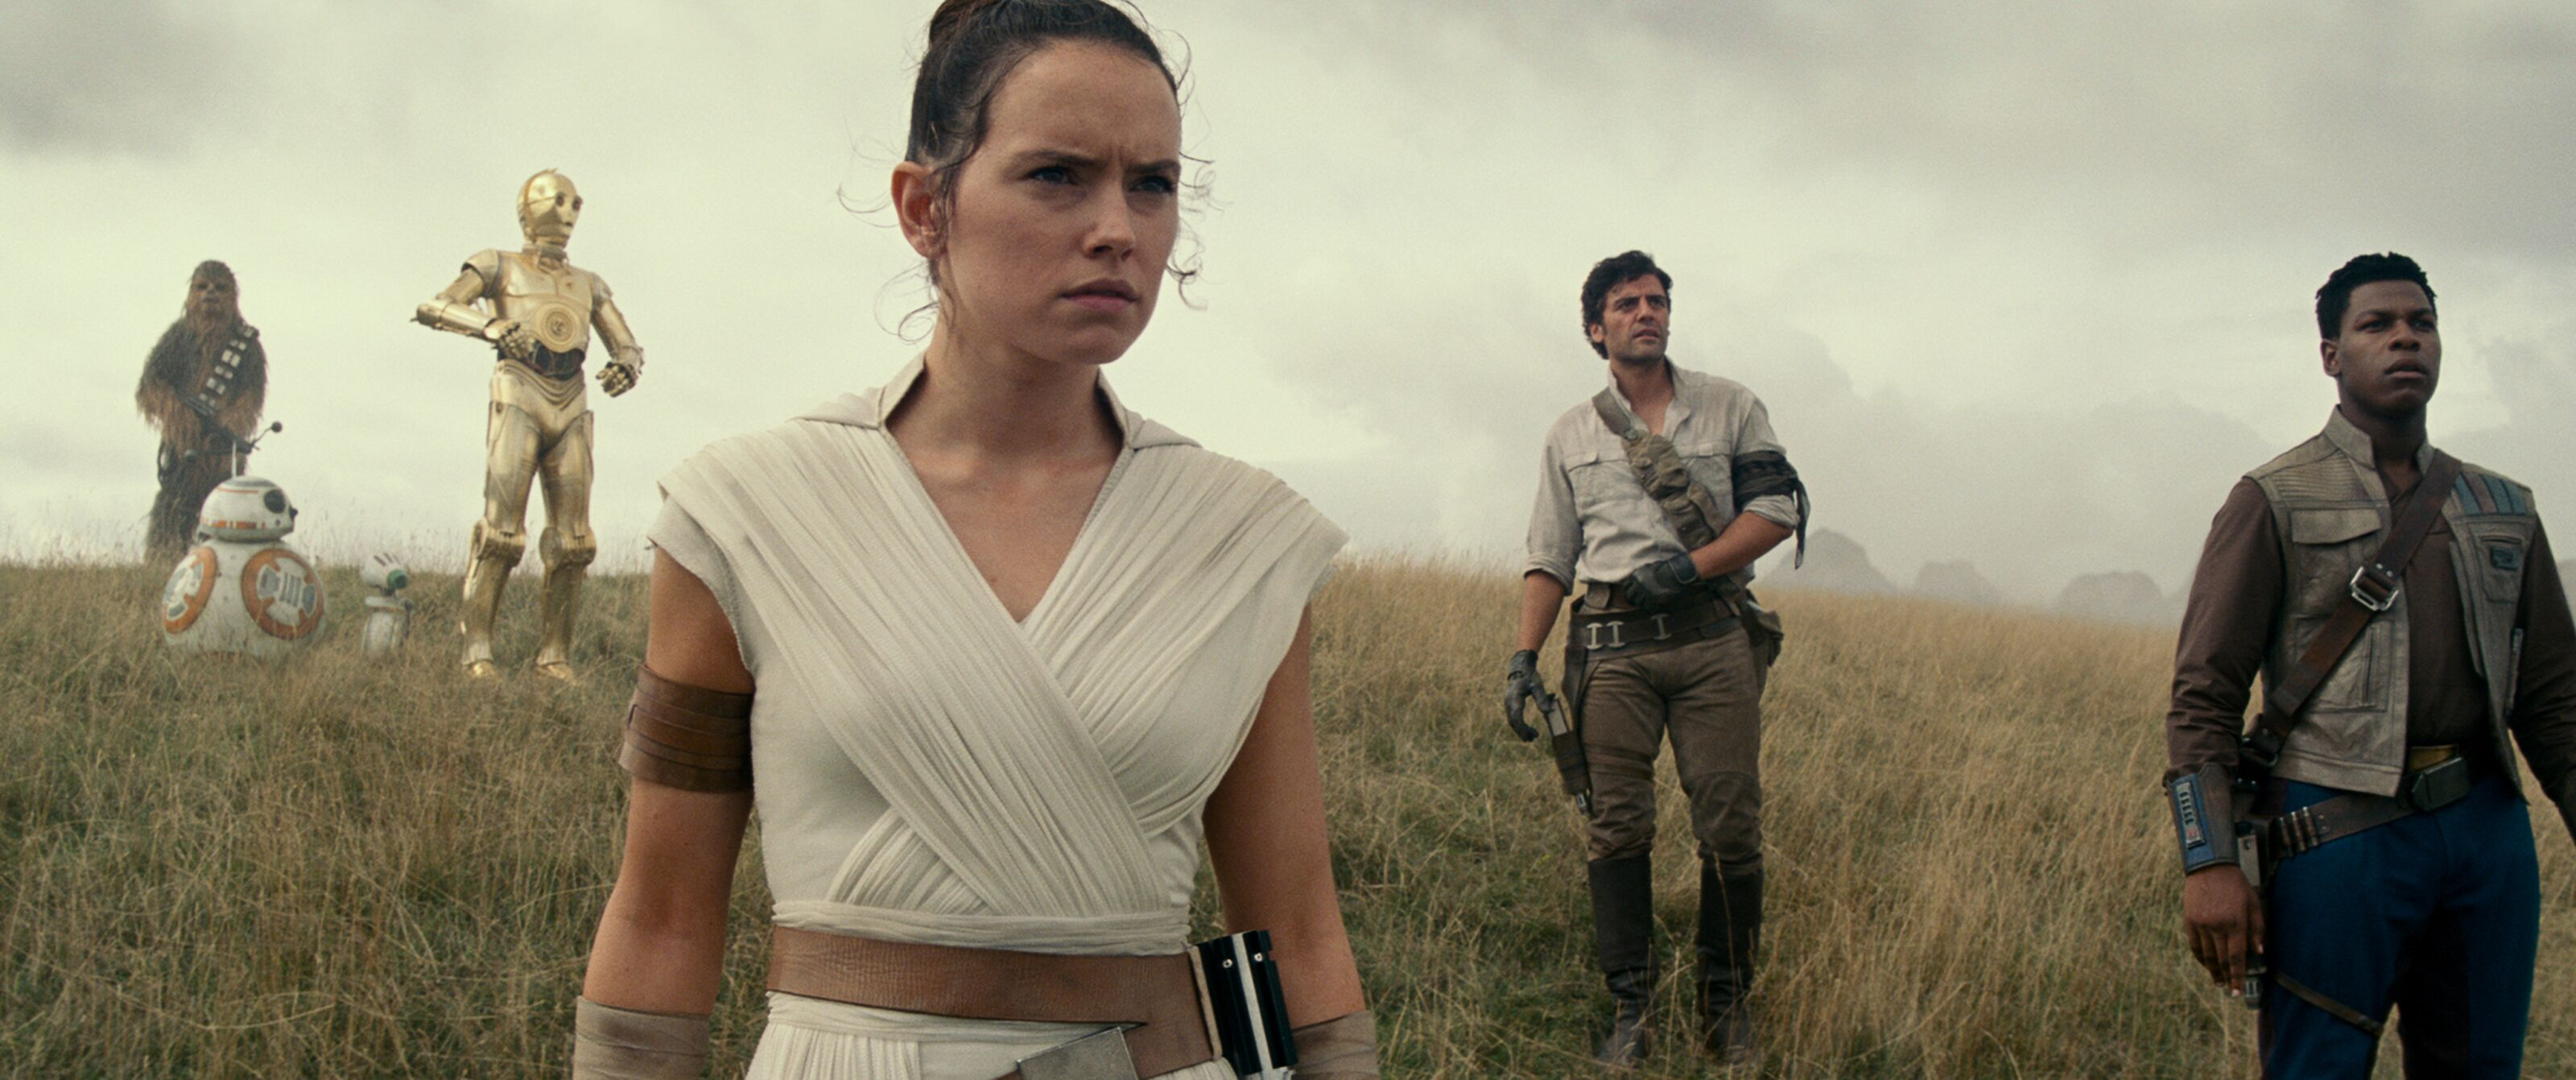 A new Star Wars: The Rise of Skywalker trailer isn't all that far, far away